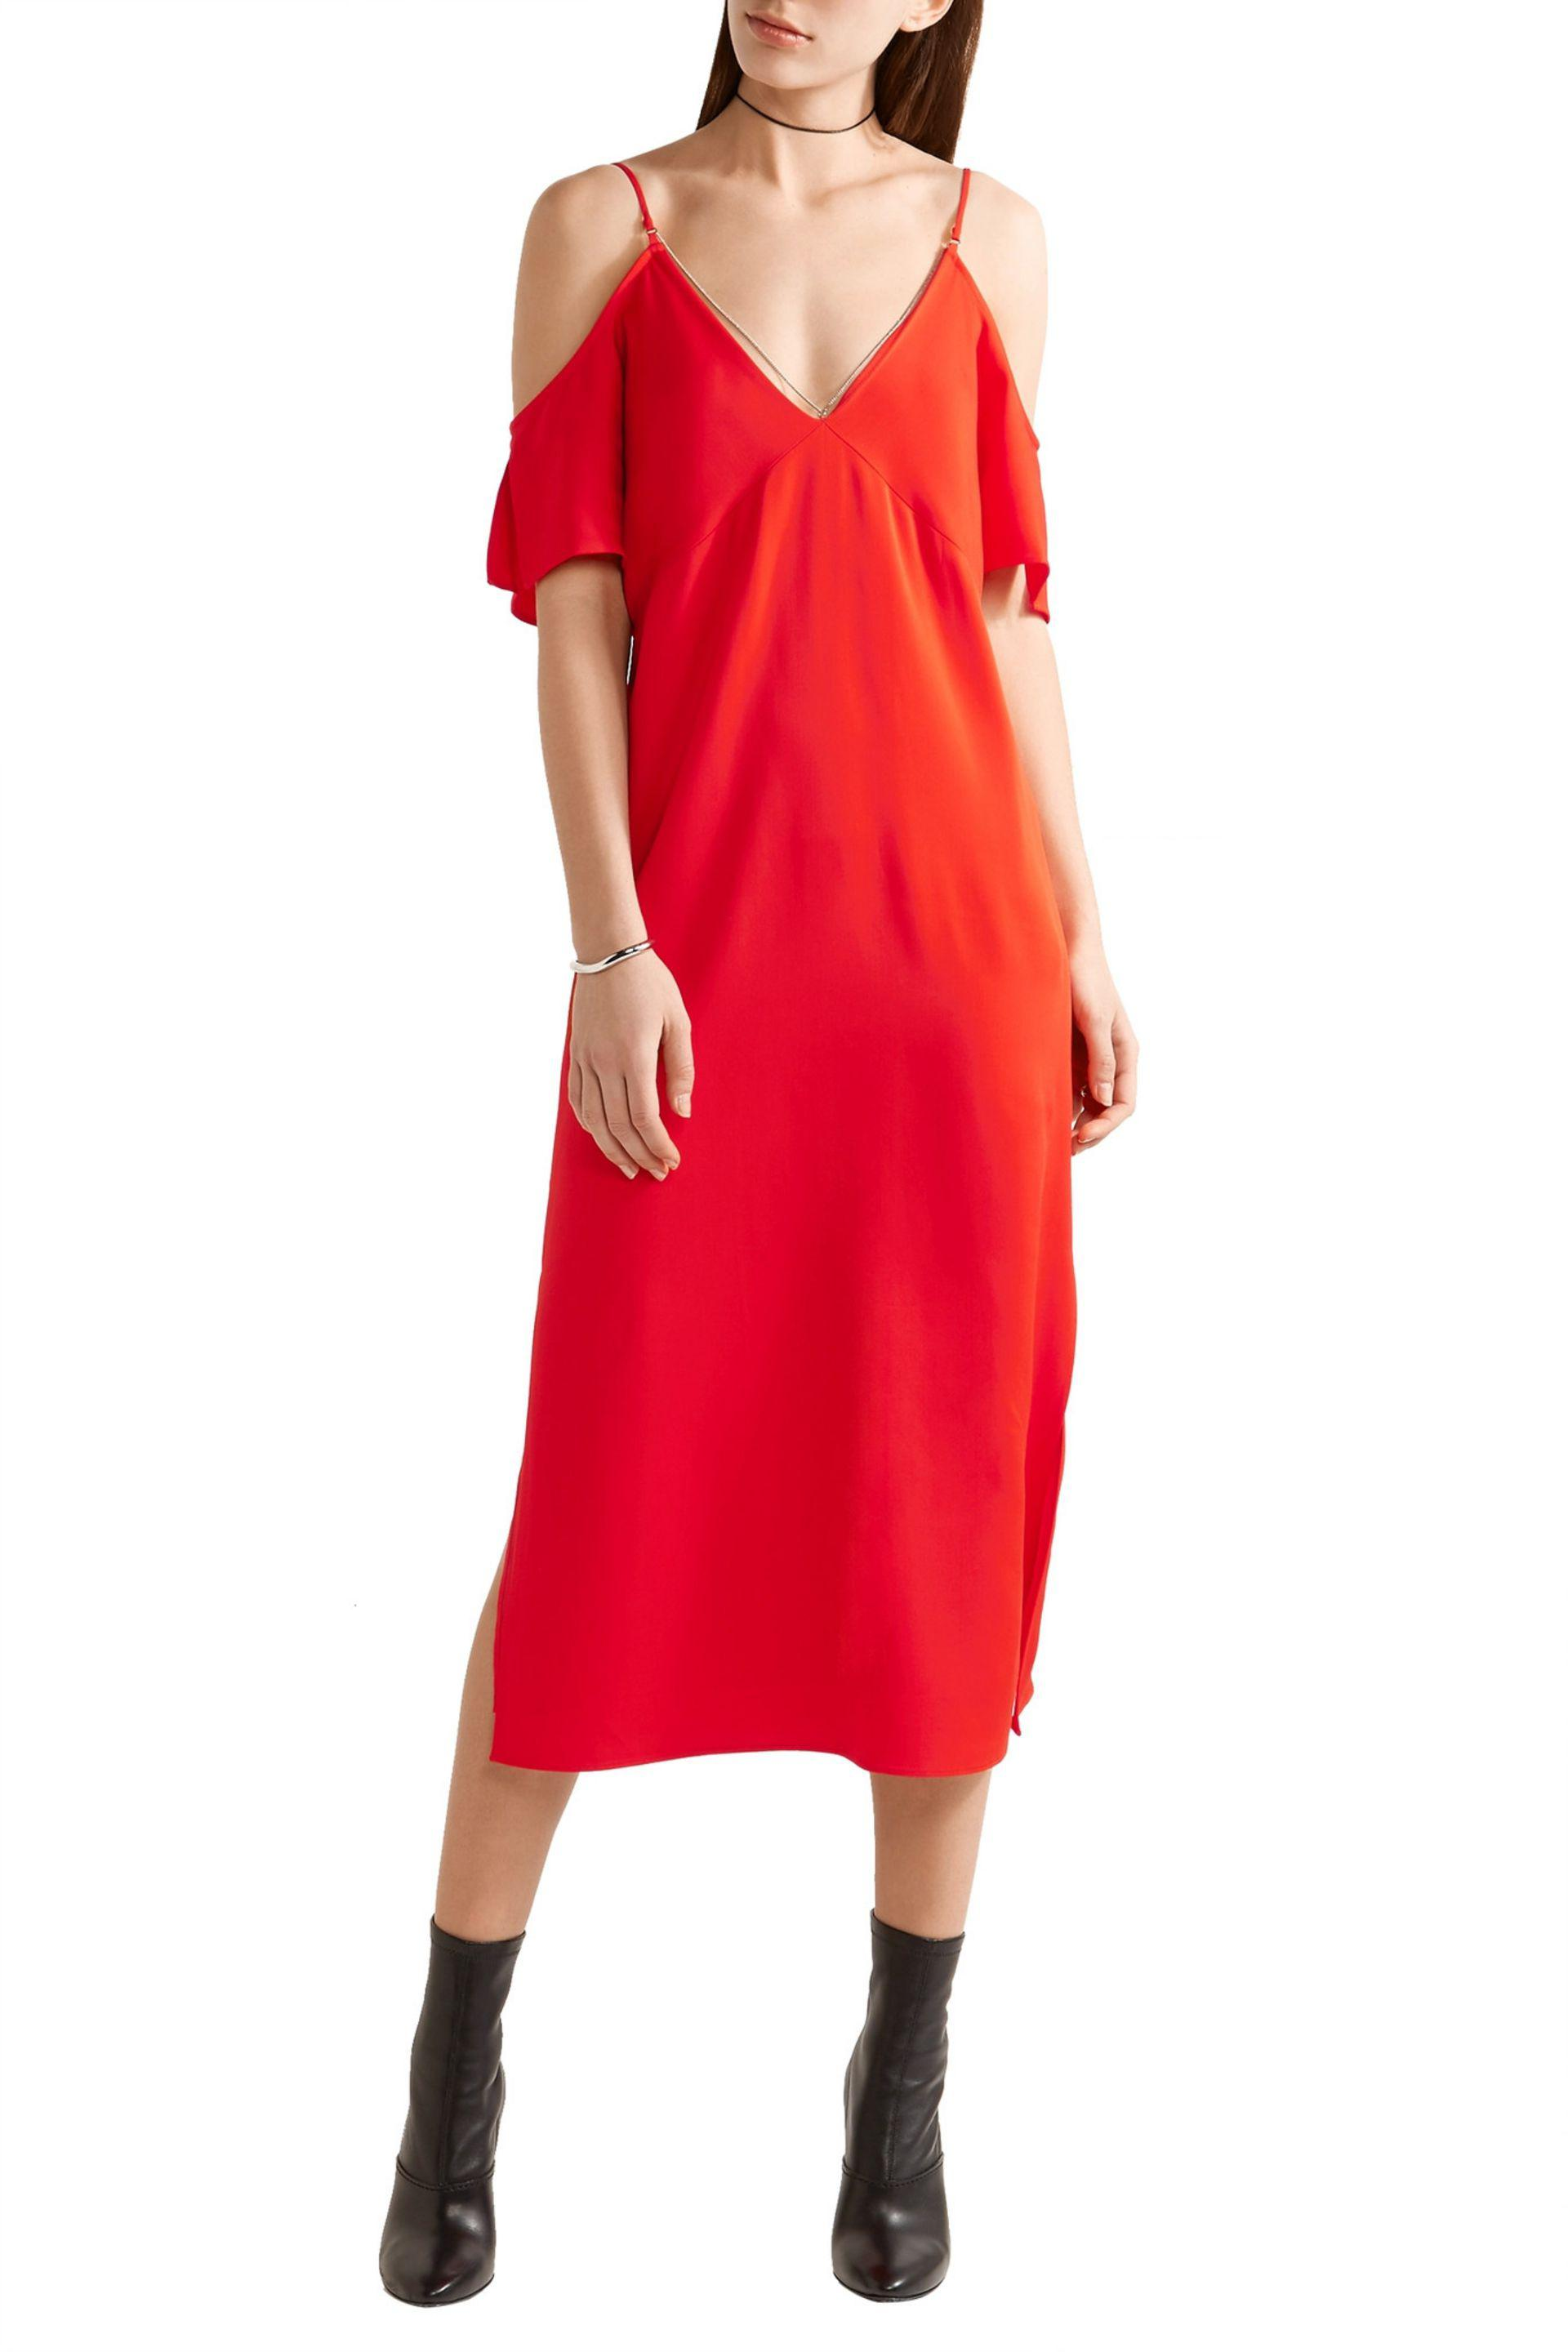 T By Alexander Wang Woman Off-the-shoulder Chain-embellished Stretch-crepe Midi Dress Red Size 4 Alexander Wang 9Qoeta6Q